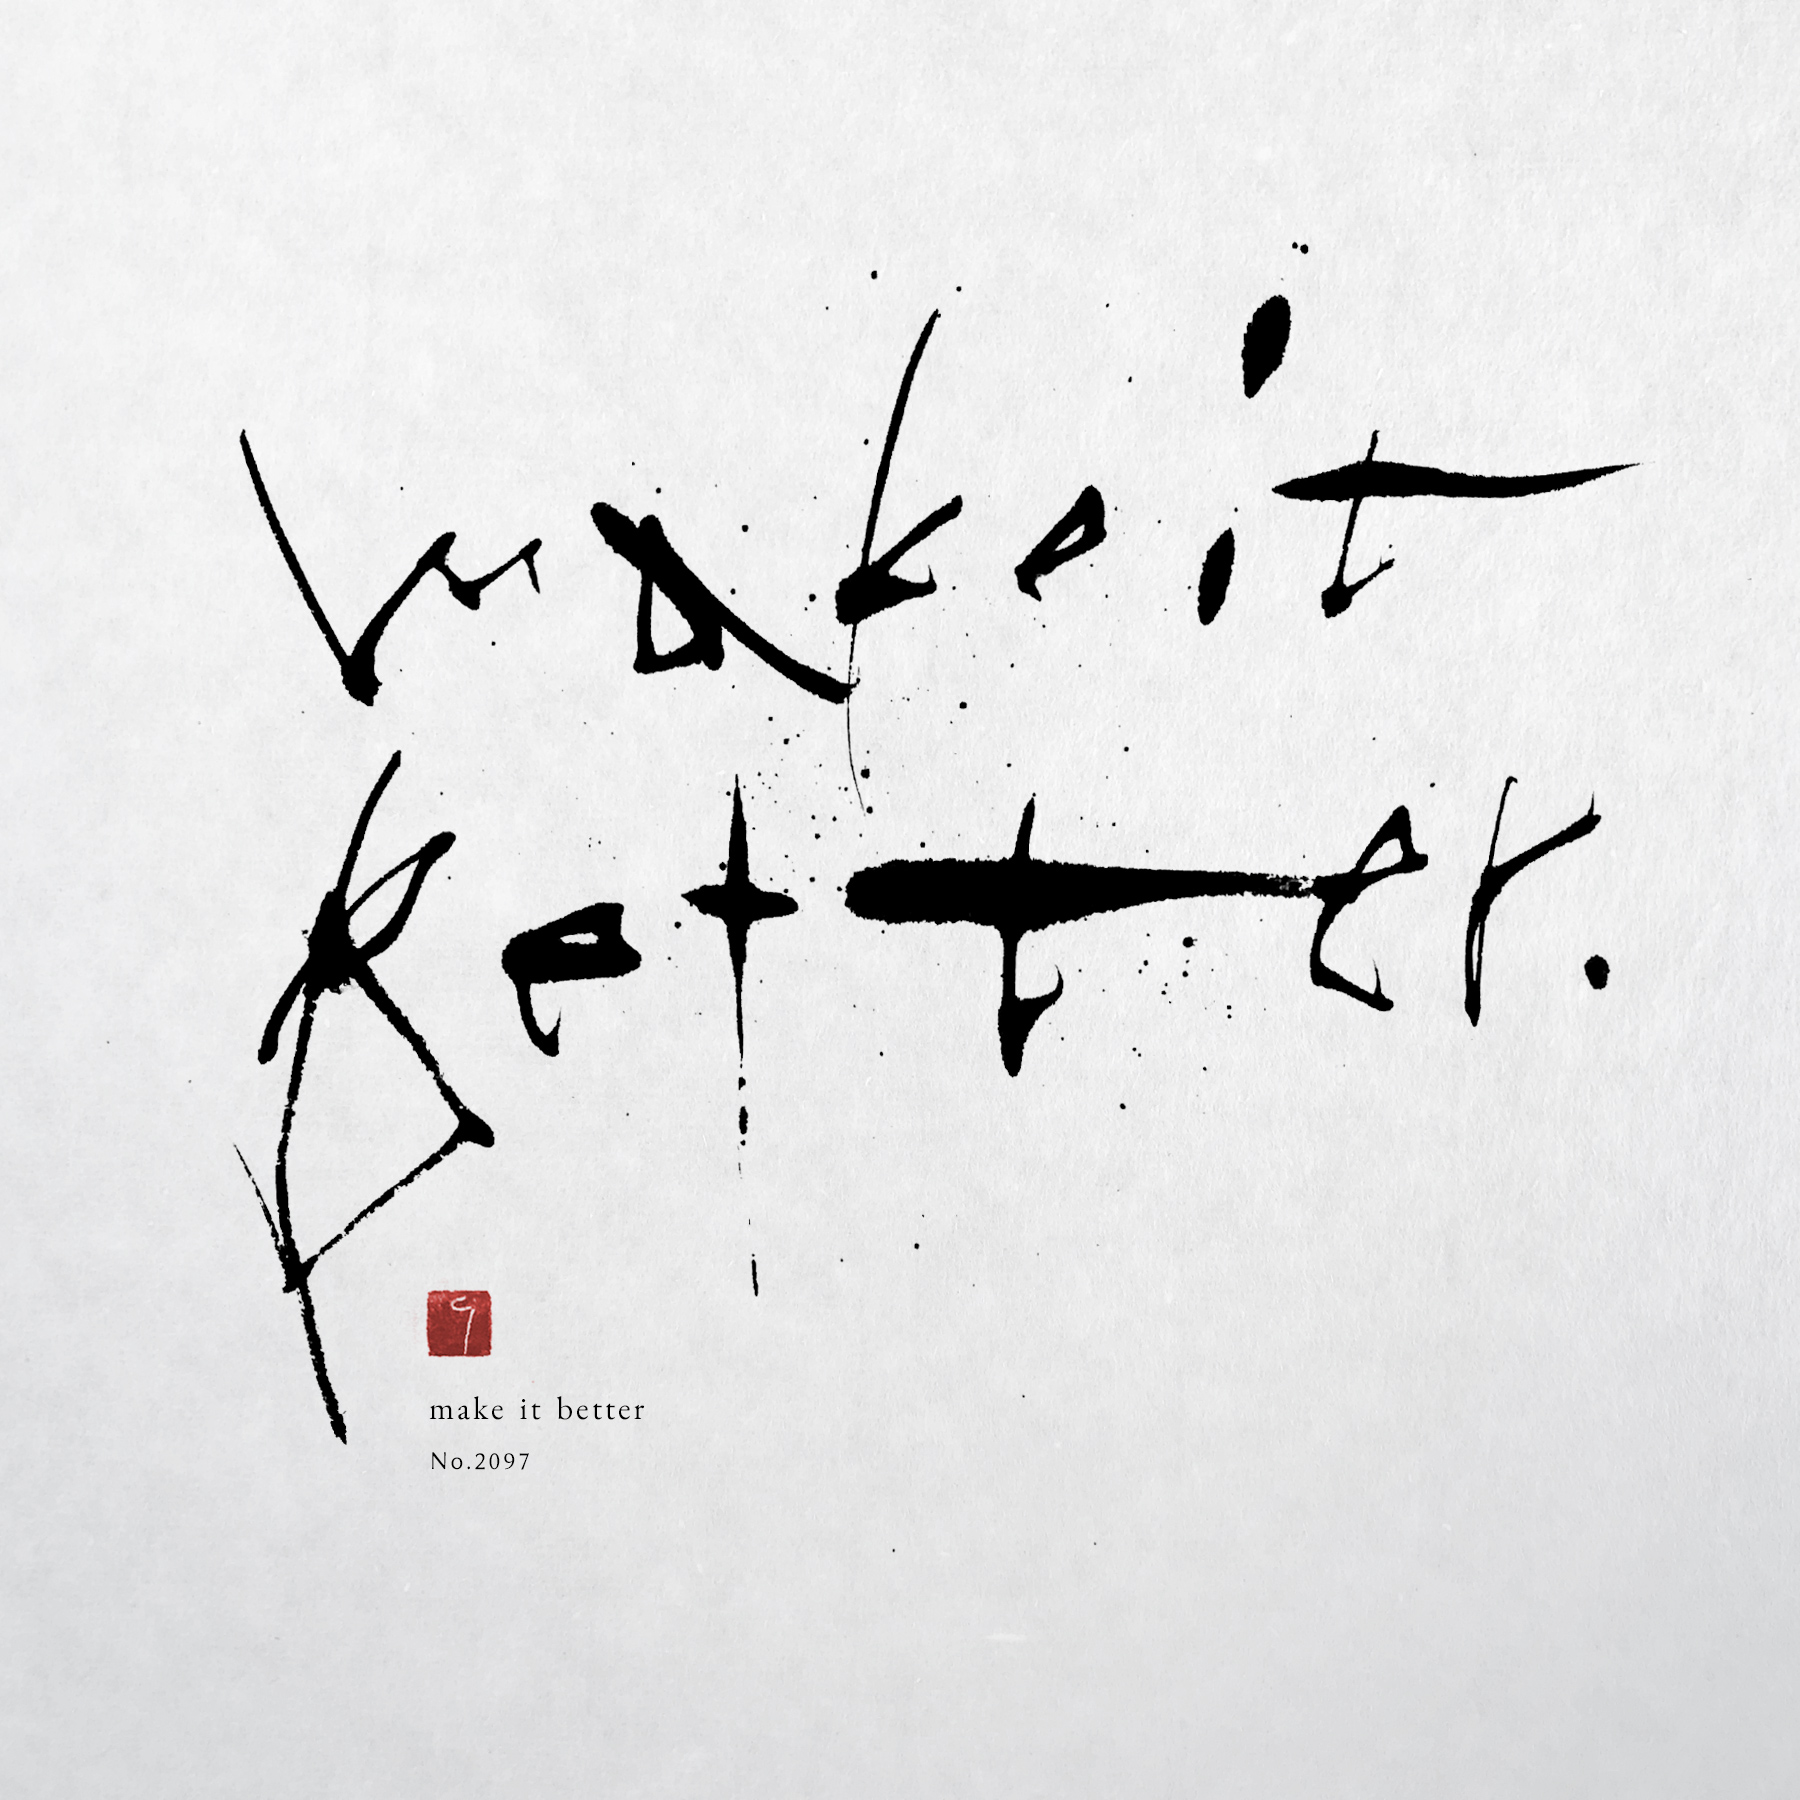 make it better 書道作品 japaneseart japanese calligraphy 書家 田川悟郎 Goroh Tagawa